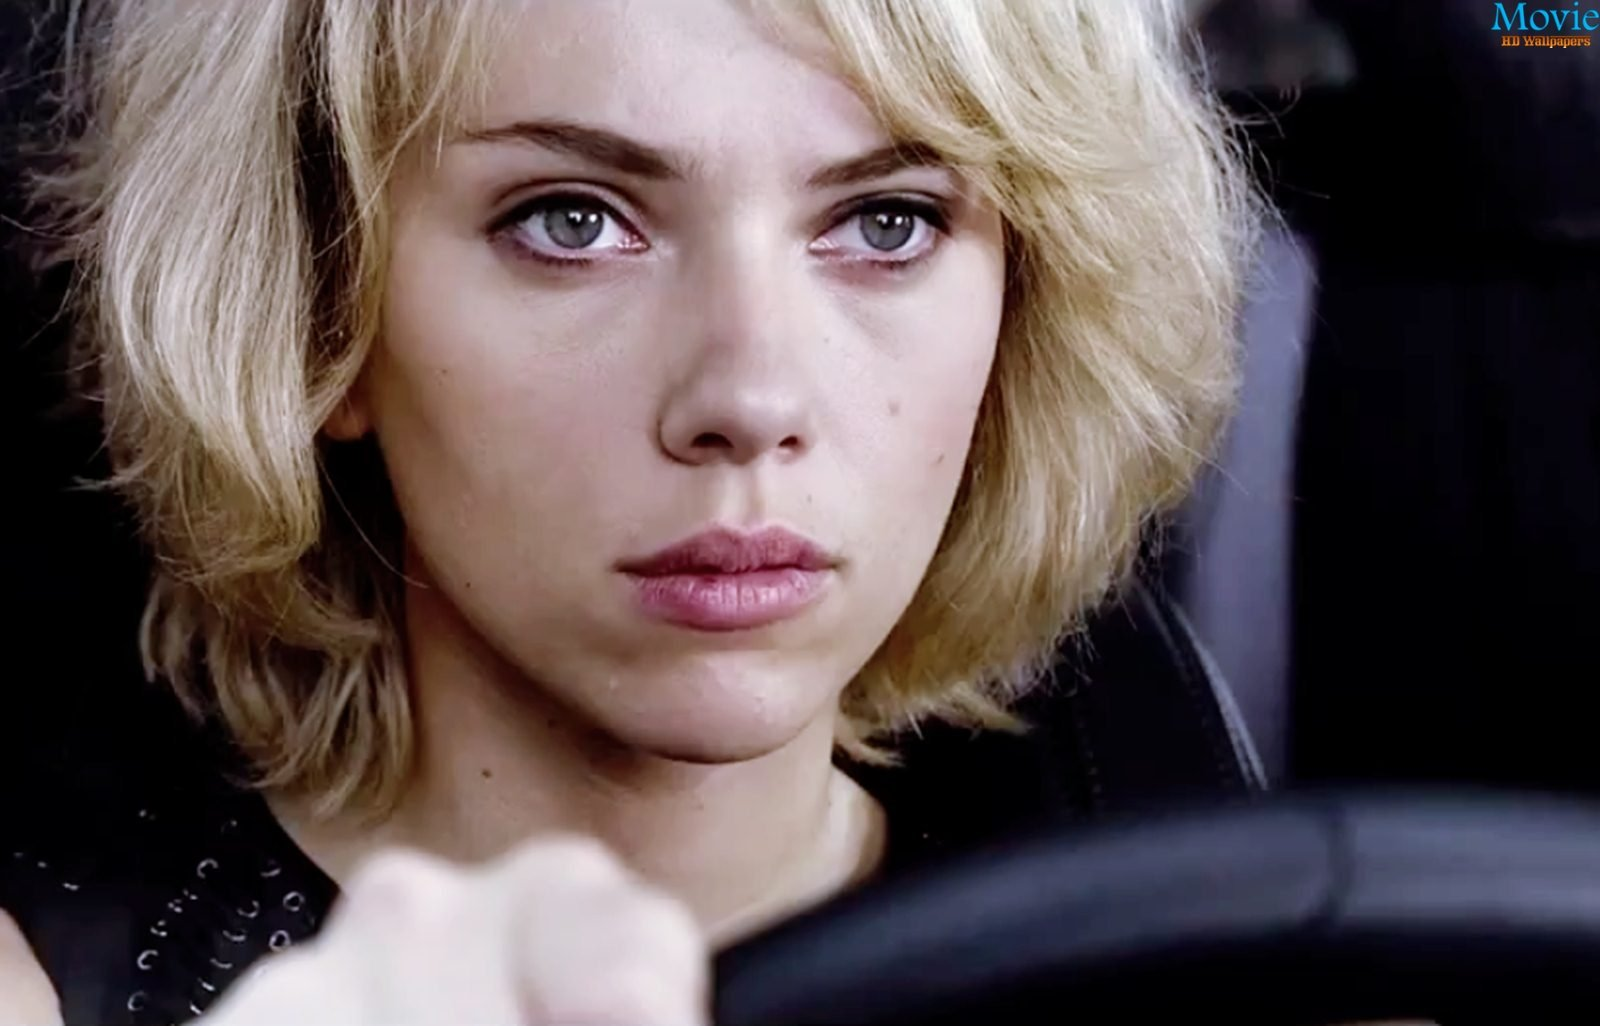 scarlett johansson lucy wallpaper - photo #5